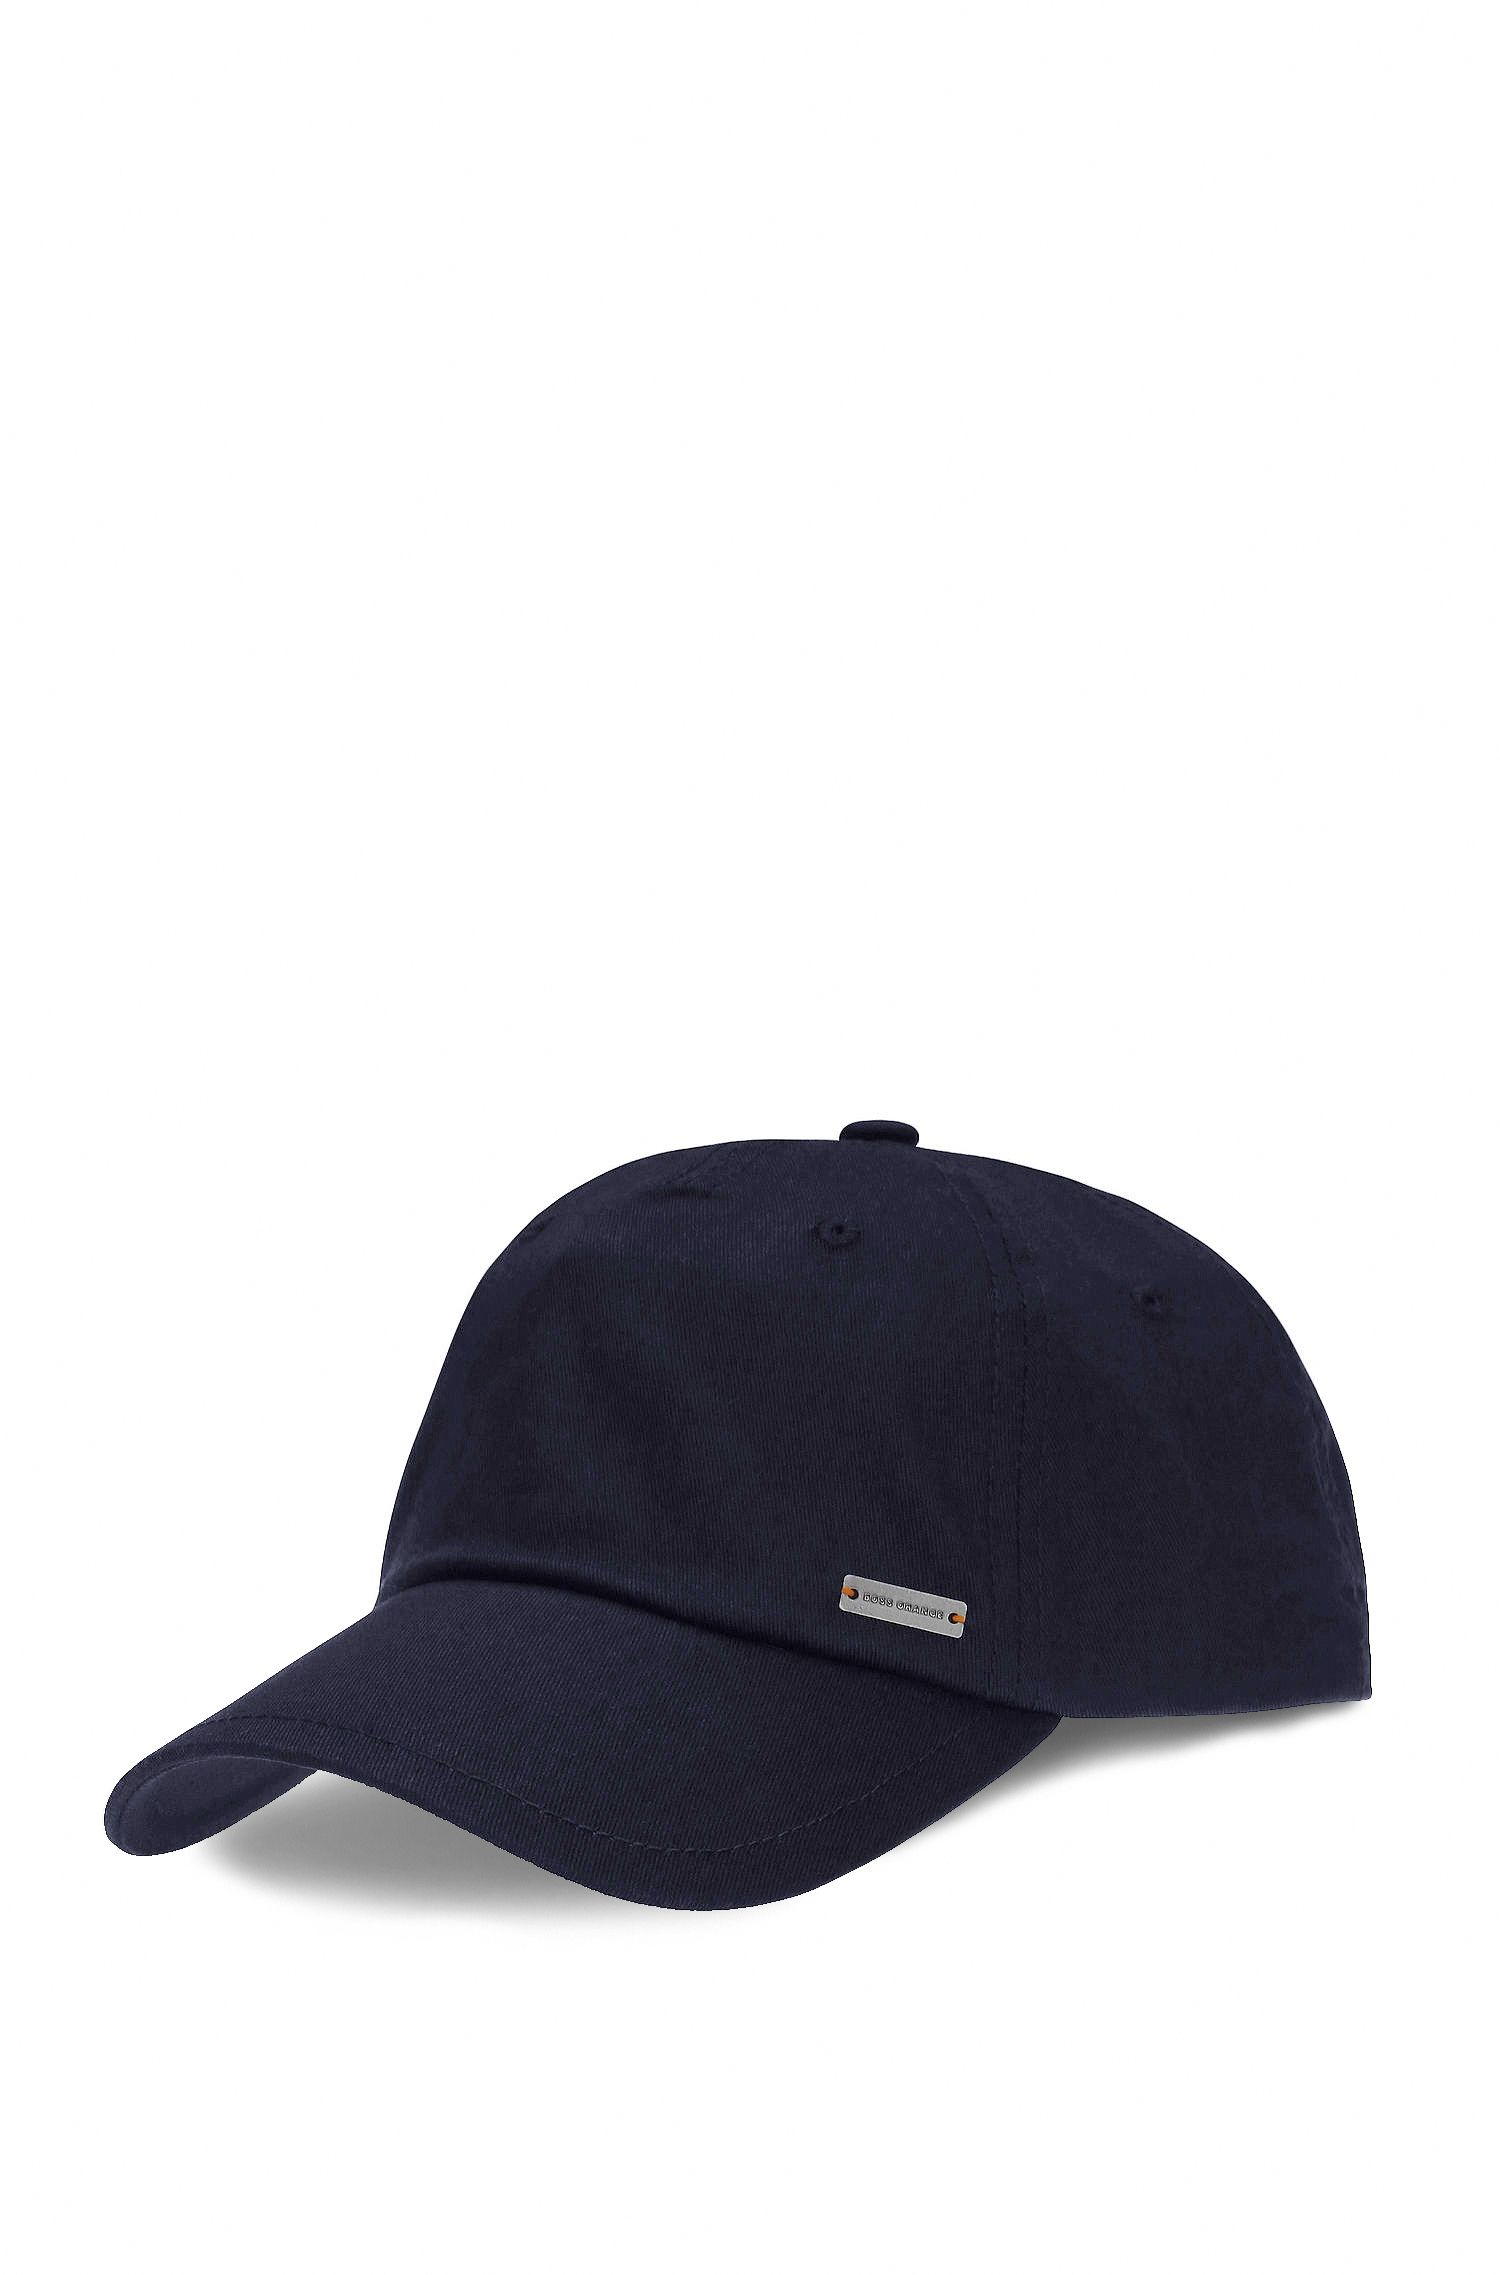 Adjustable baseball cap in cotton twill